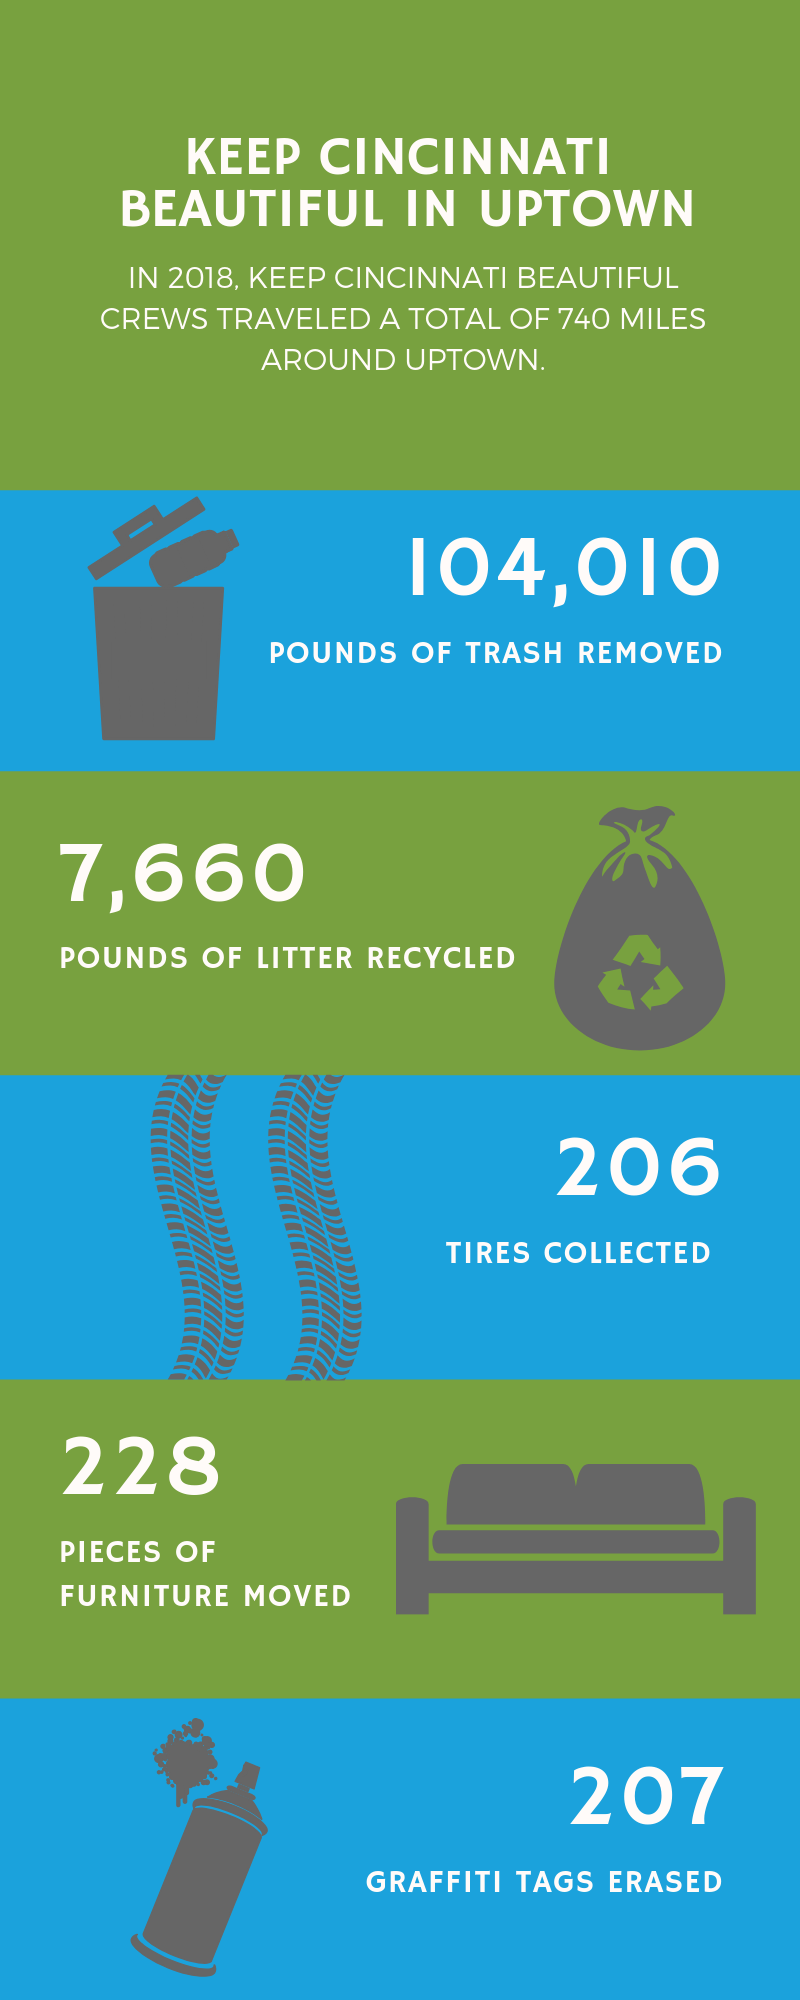 Keep Cincinnati Beautiful 2018 statistics in Uptown Cincinnati.